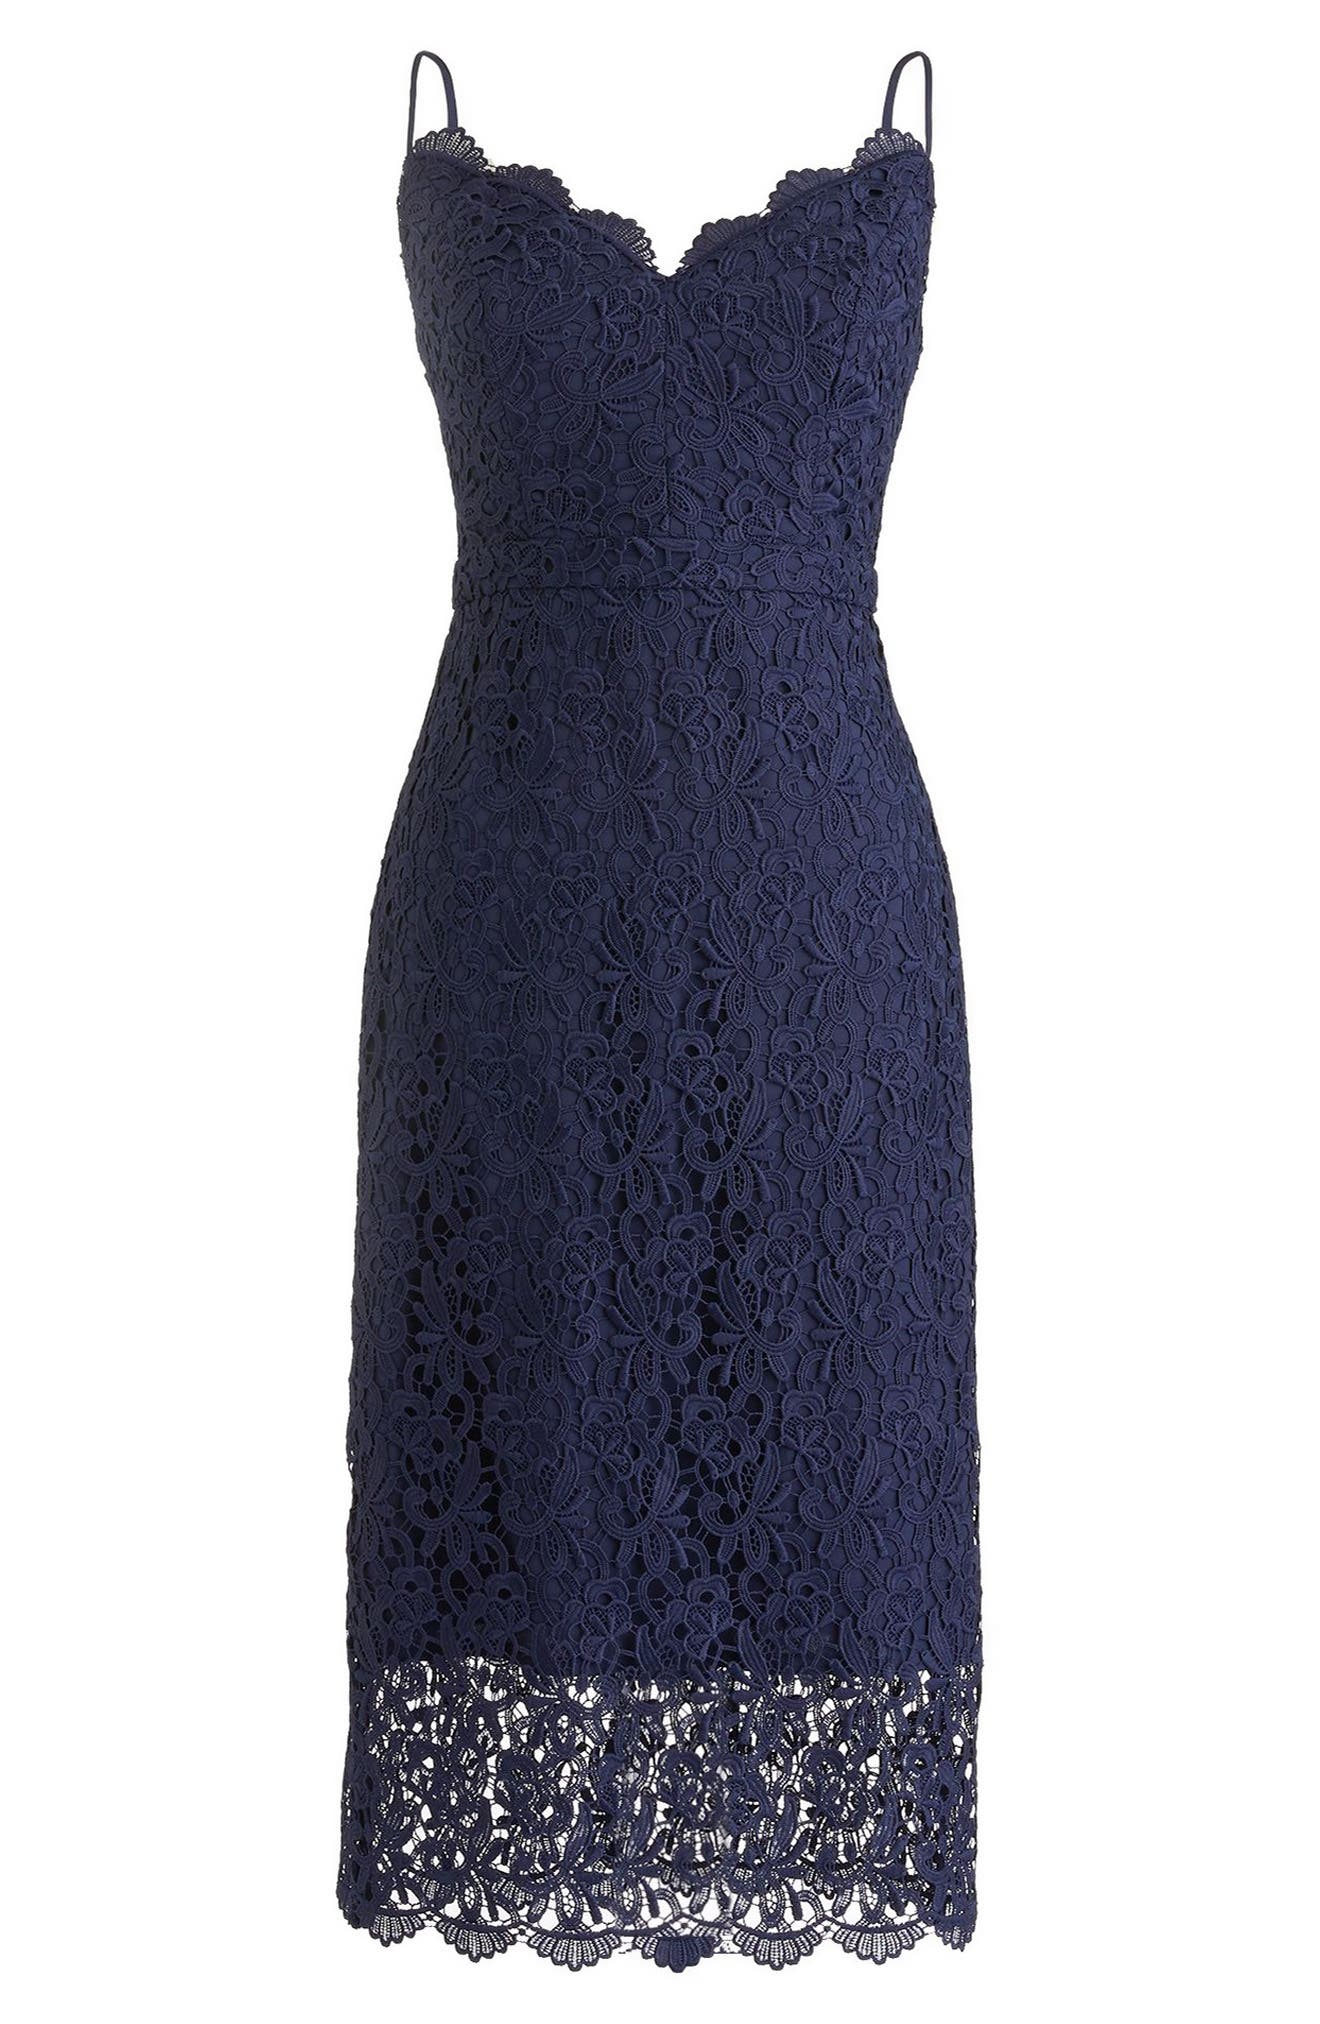 J.Crew Guipure Lace Spaghetti Strap Dress,                         Main,                         color, Navy